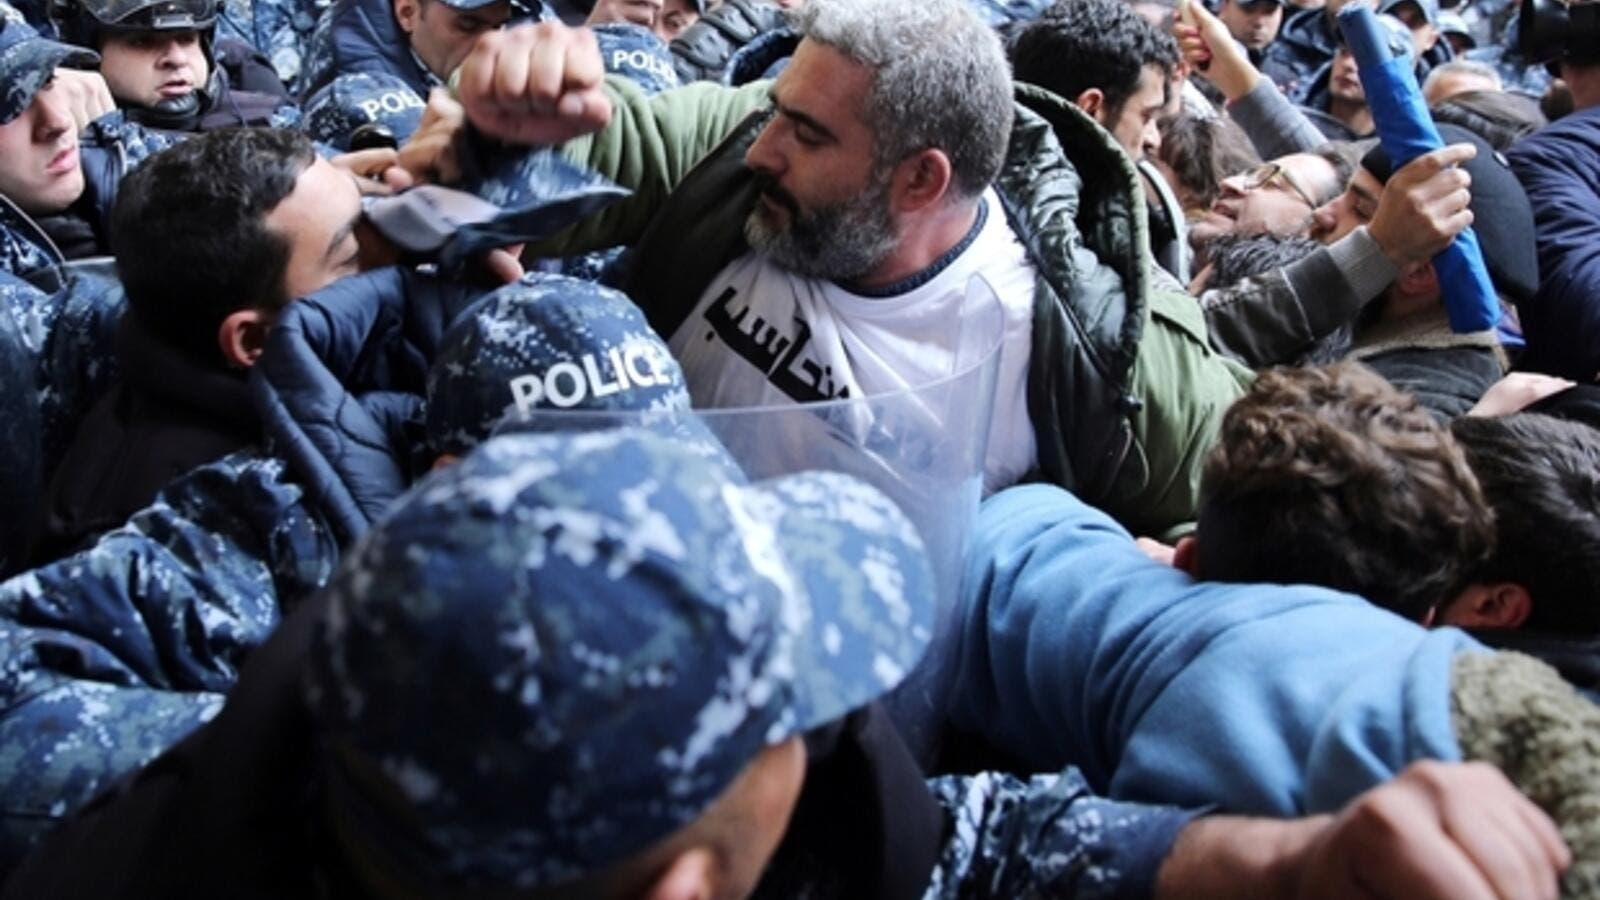 Video of Lebanese Security Officer Slapping Worker Goes